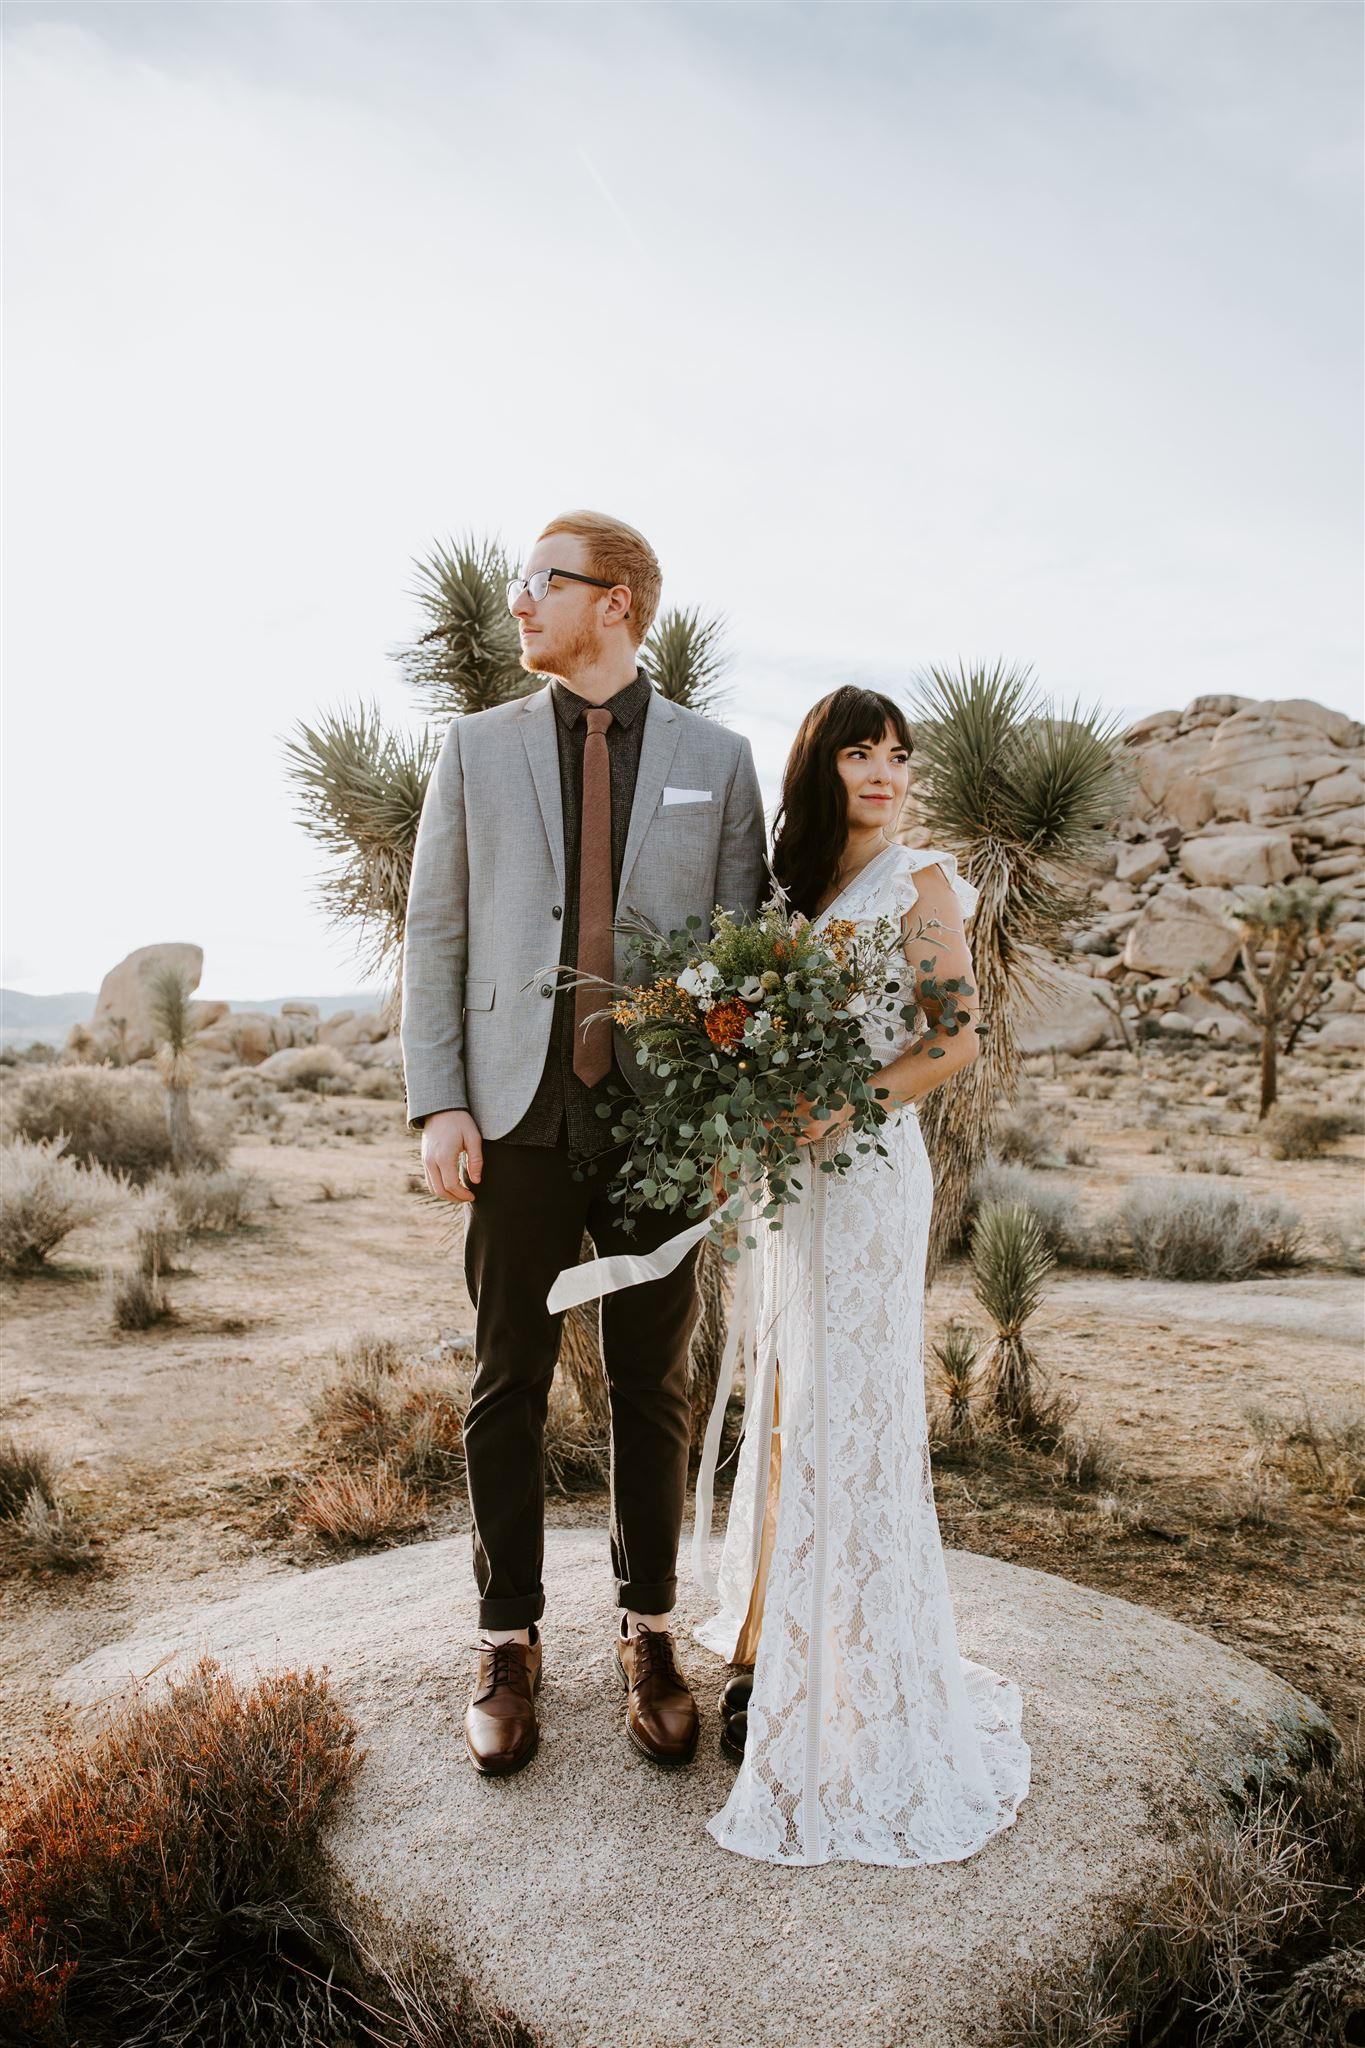 Joshua Tree CA Elopement Wedding  Photographer May Iosotaluno 09.jpg